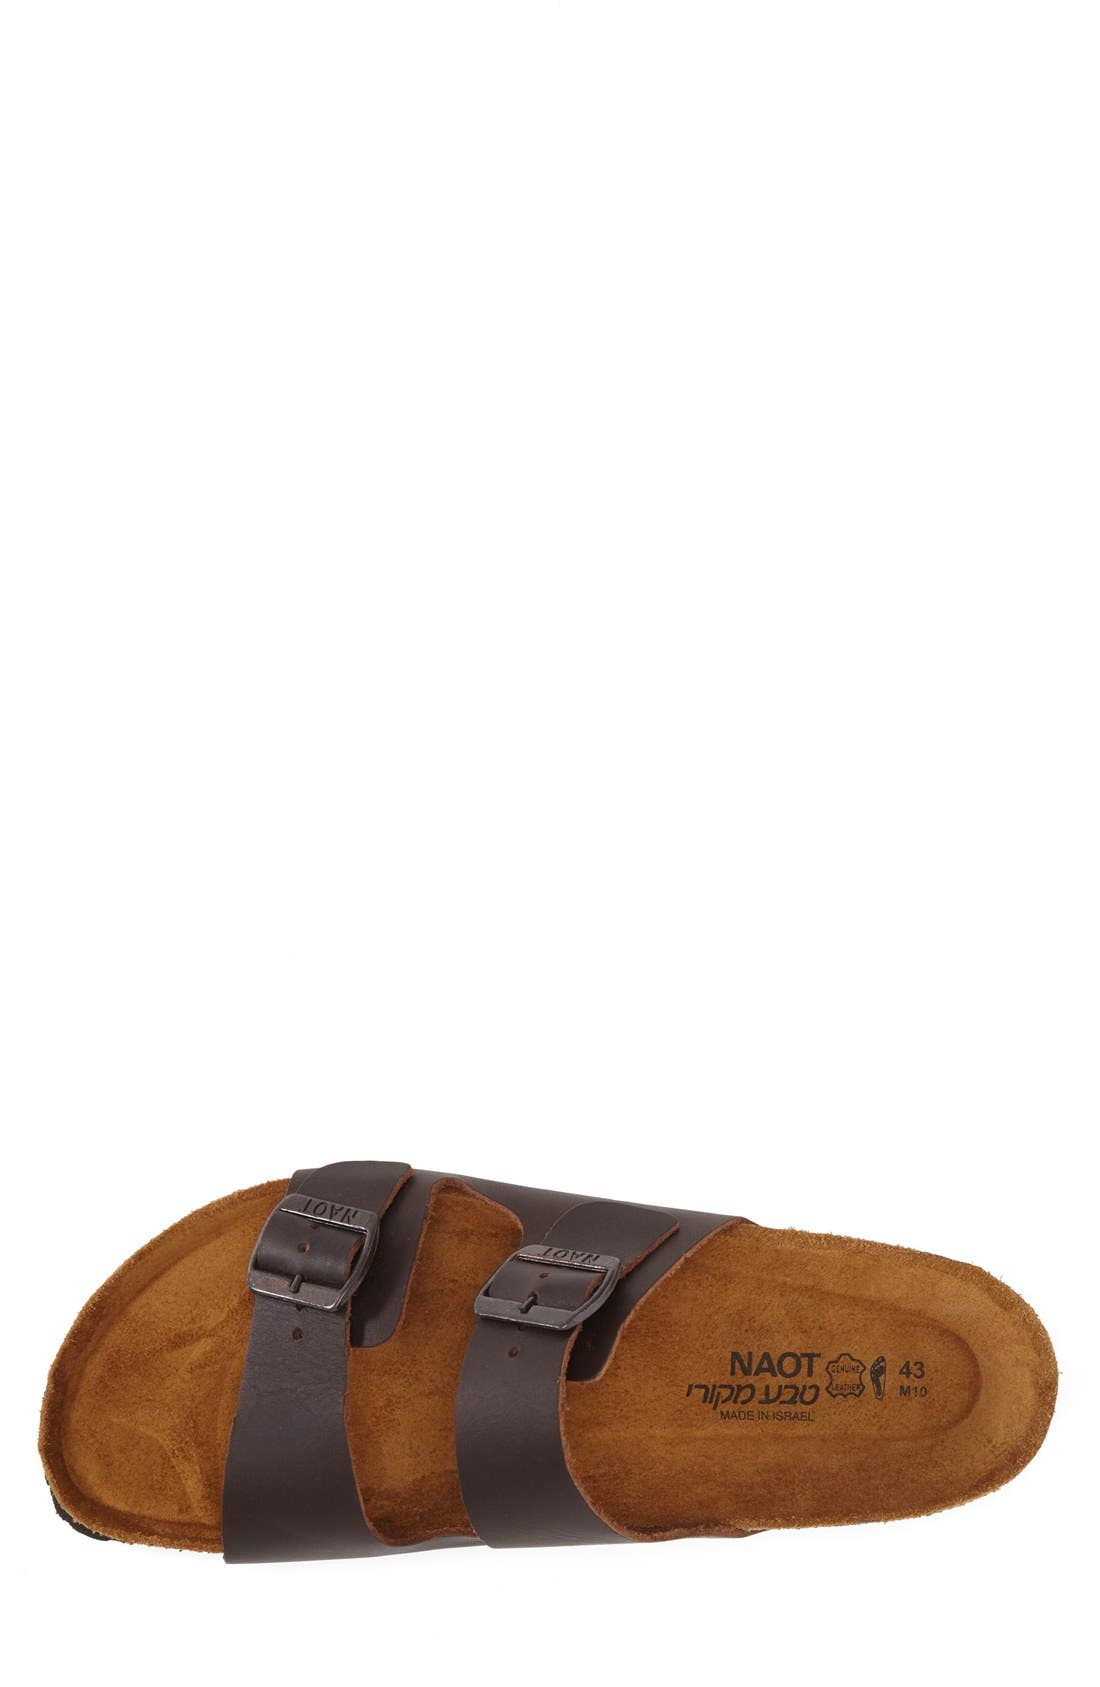 Santa Barbara Slide Sandal,                             Alternate thumbnail 3, color,                             BUFFALO LEATHER